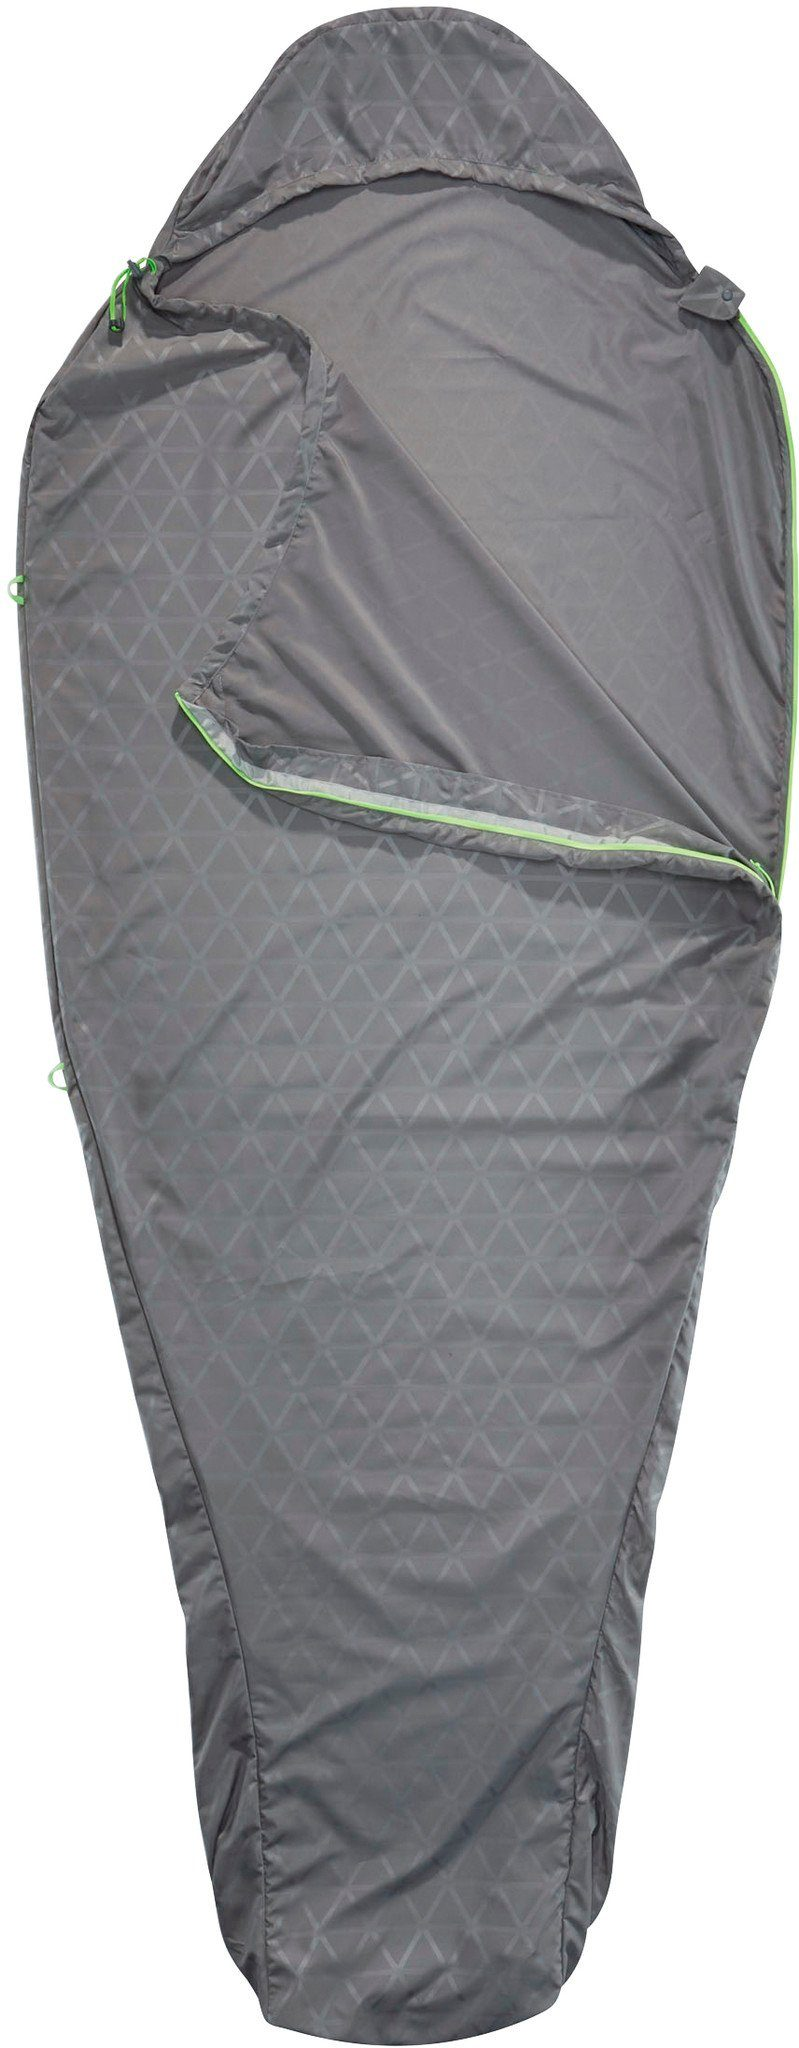 Therm-A-Rest Schlafsack »SleepLiner Sleeping Bag long«